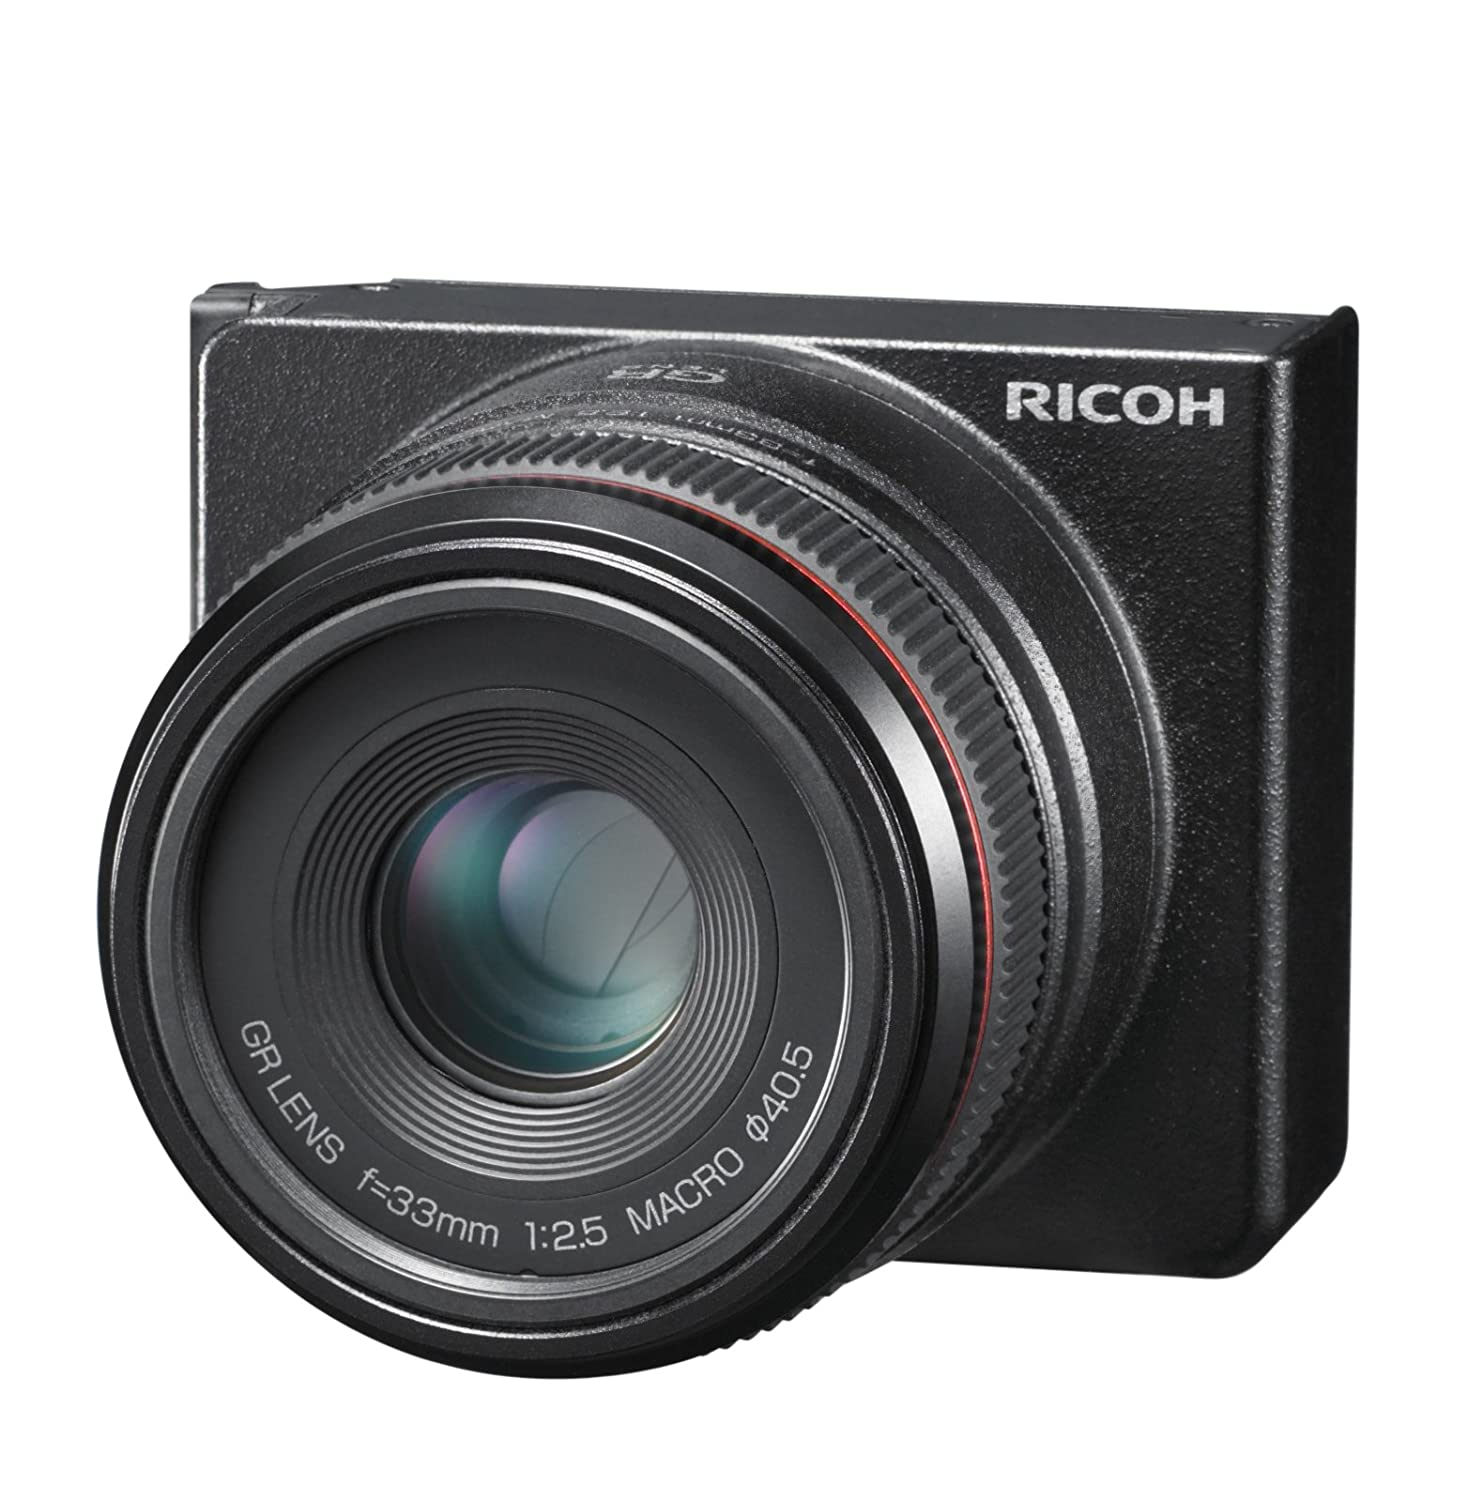 Ricoh A12 50mm f/2.5 Macro GR Lens with APS-C 12.3 MP CMOS Sensor by Ricoh   B002W6Z1JK